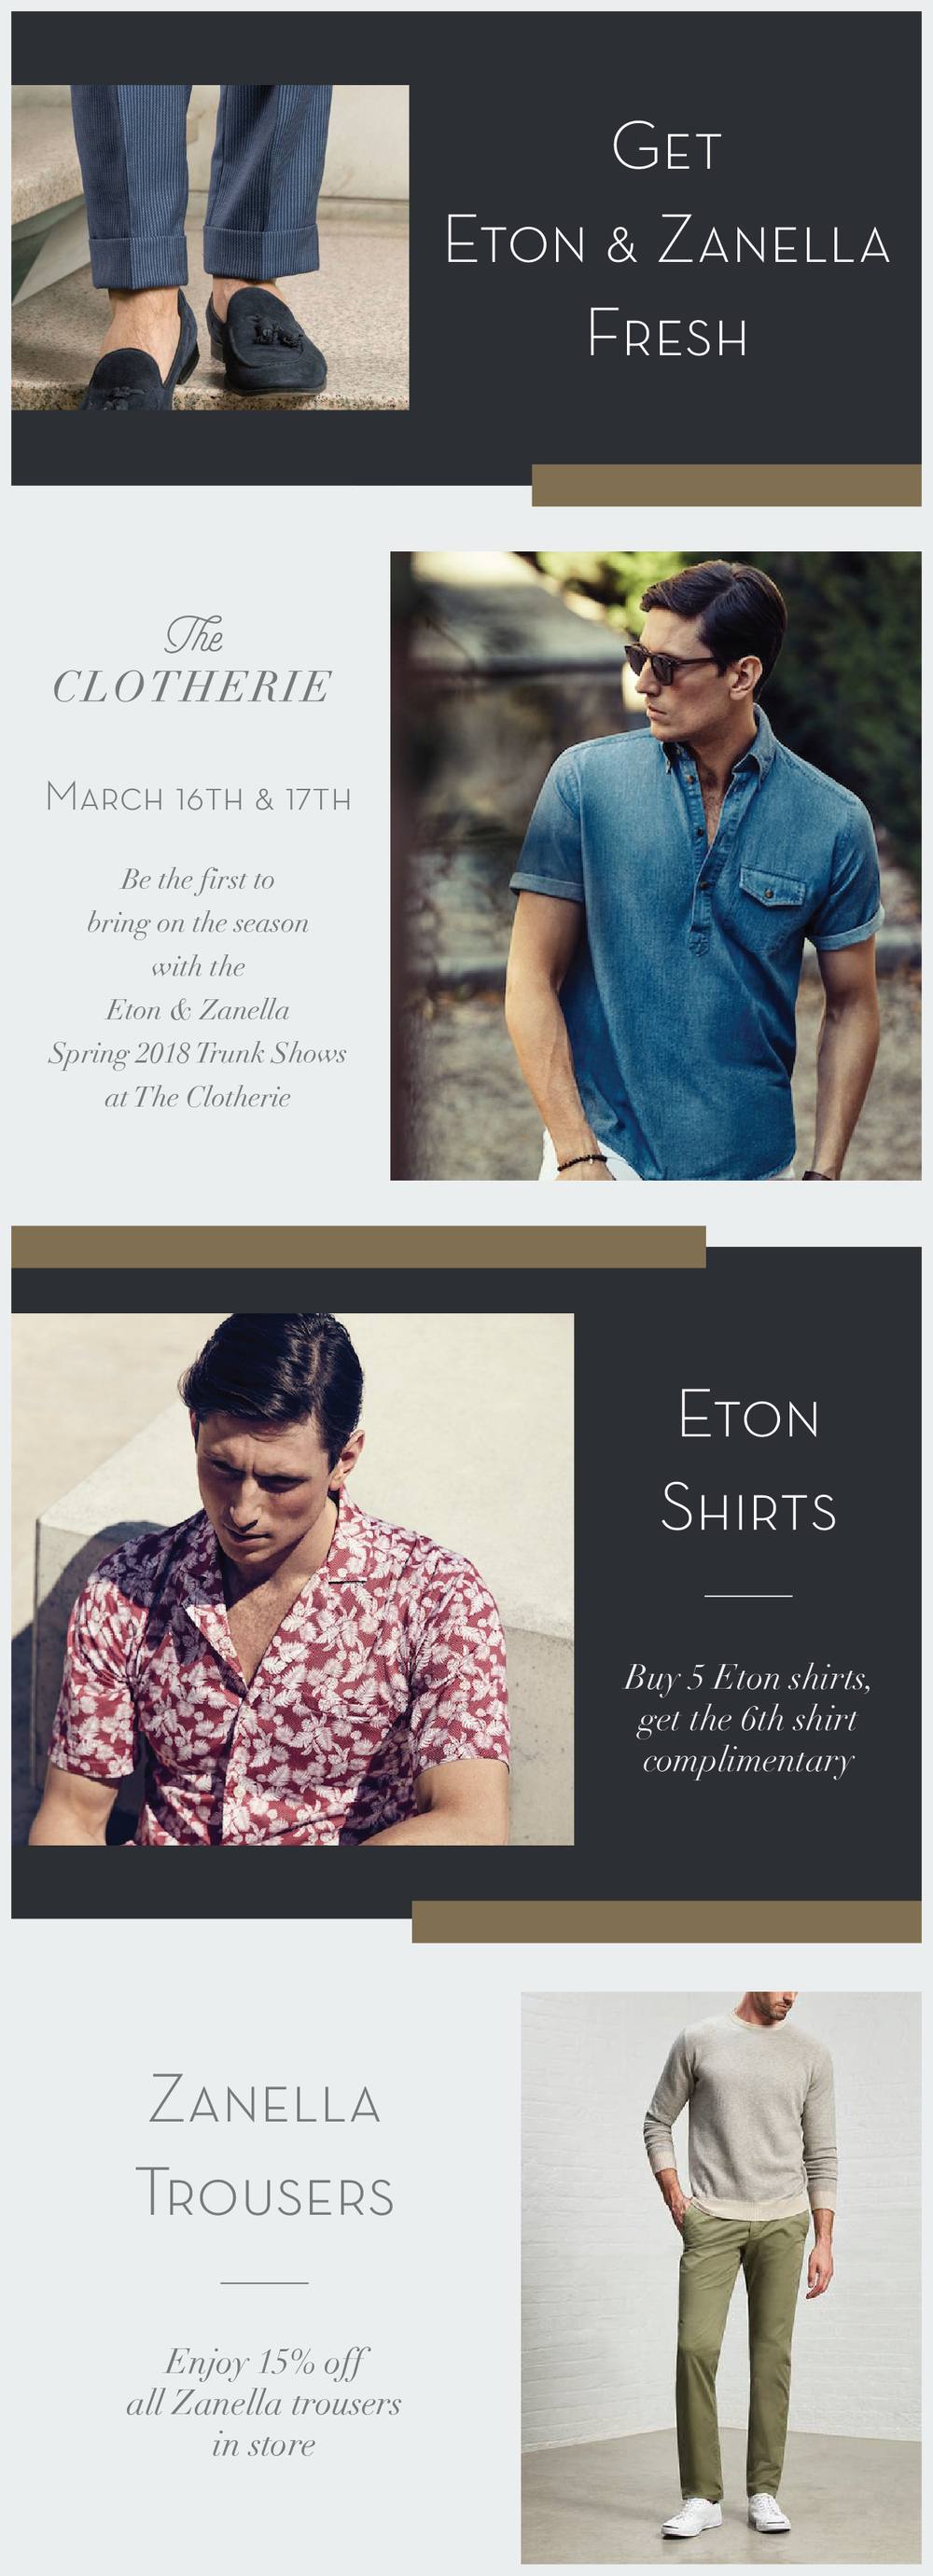 Clotherie Spring 2018 Trunk Show 3.16_Eton and Zanella 2018 Trunk Show.png